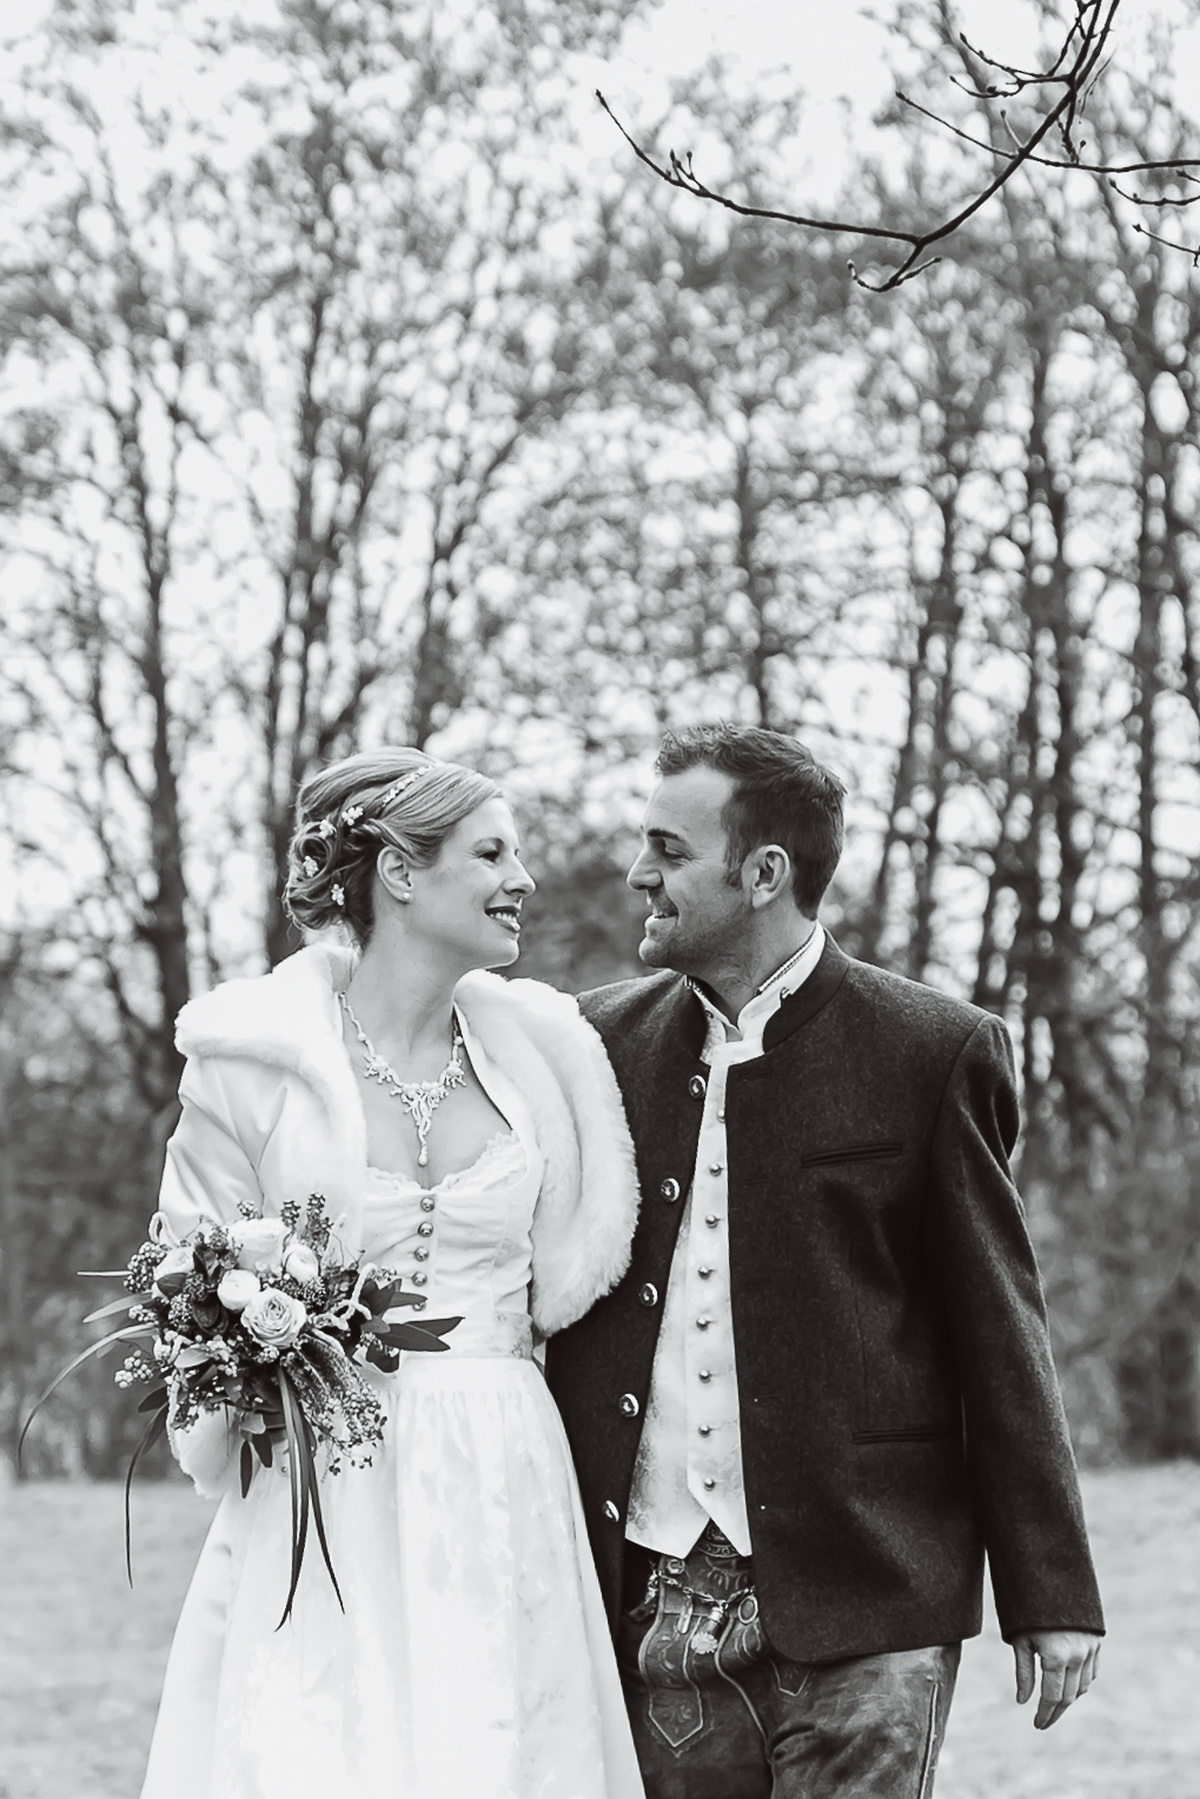 Claudia Sittig Photography - Couple - Hochzeit  Wedding Michaela und Michael - 33